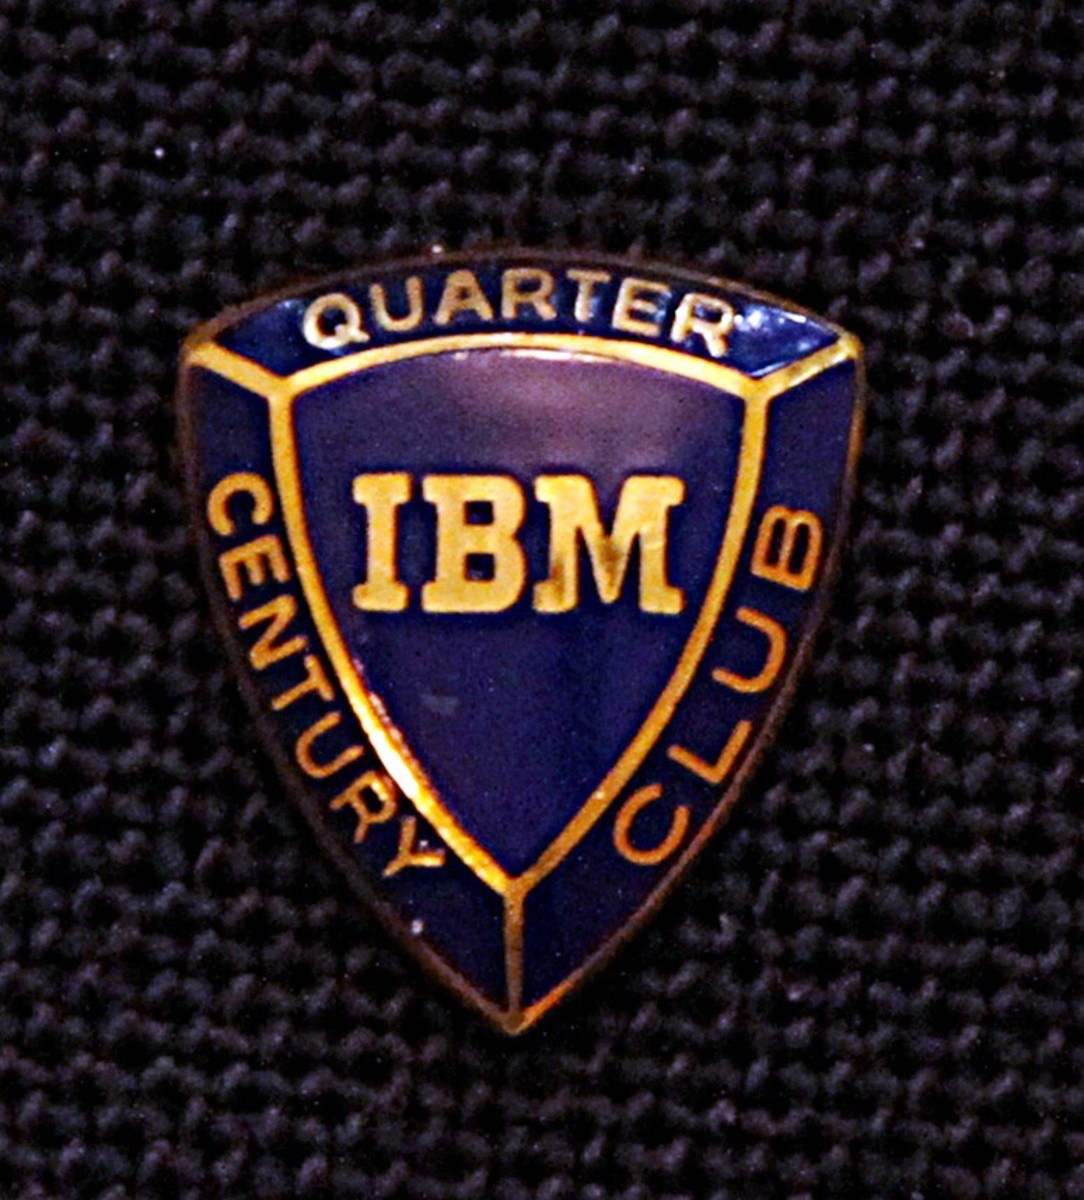 Somethings I Remembered About IBM That Is No More